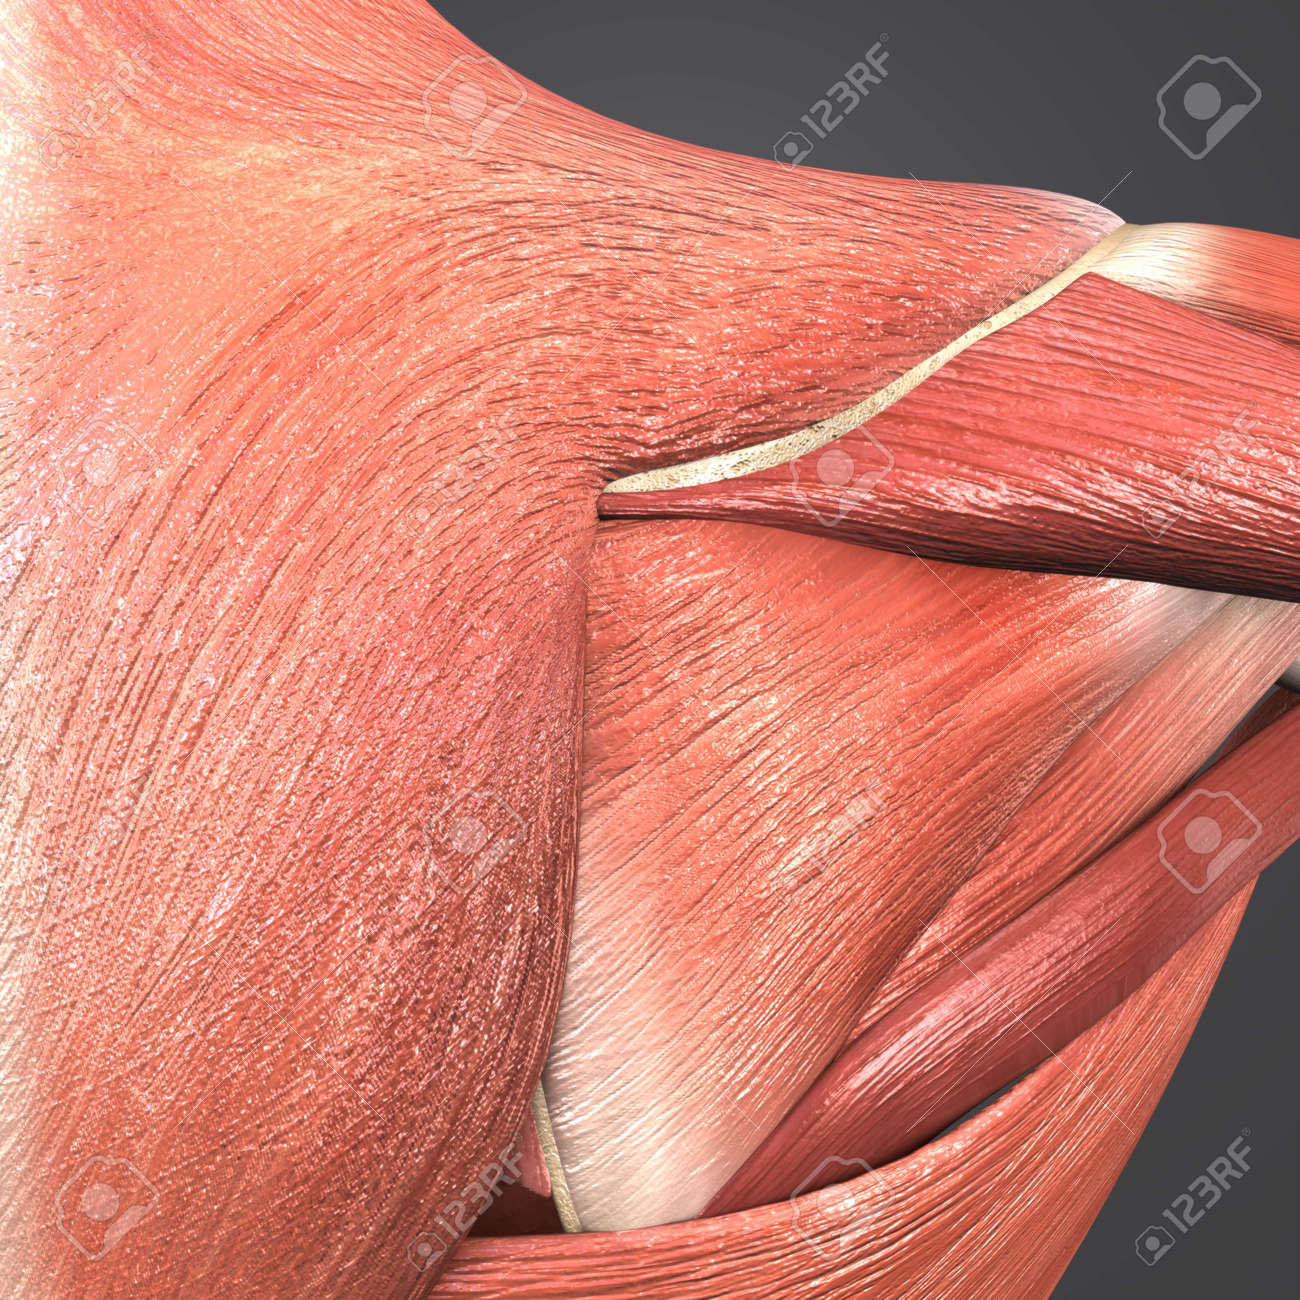 Shoulder Muscles Anatomy Posterior View Stock Photo Picture And